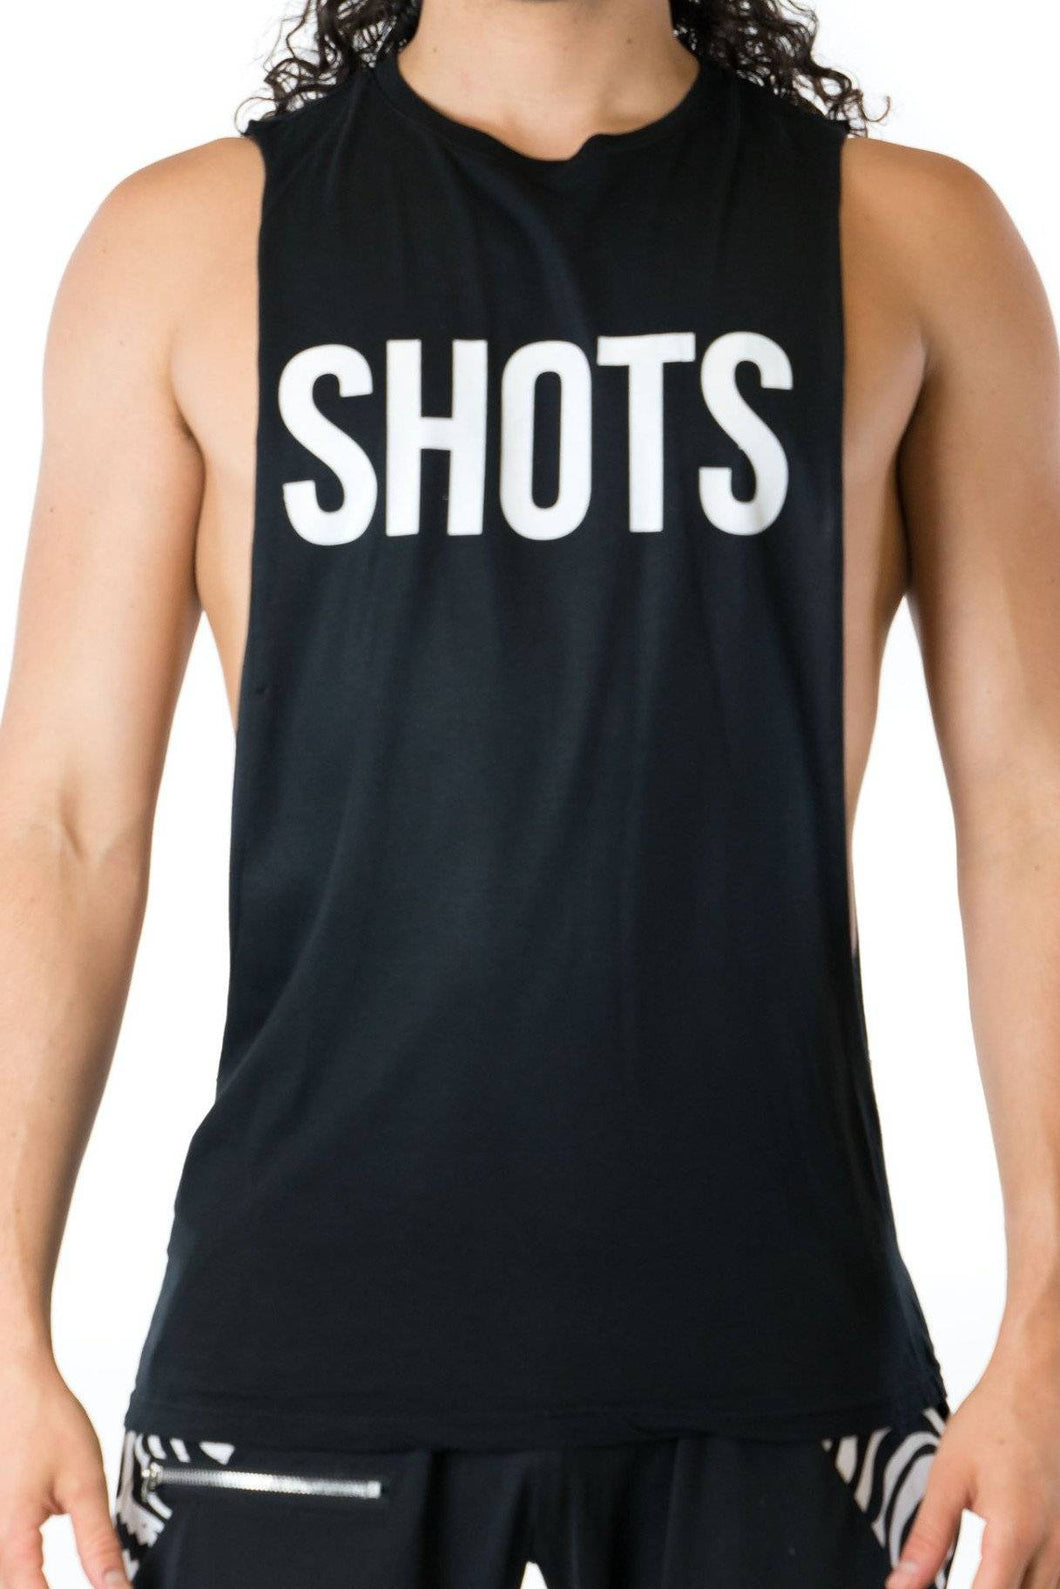 Shots - Party Rock Clothing REDFOO LMFAO